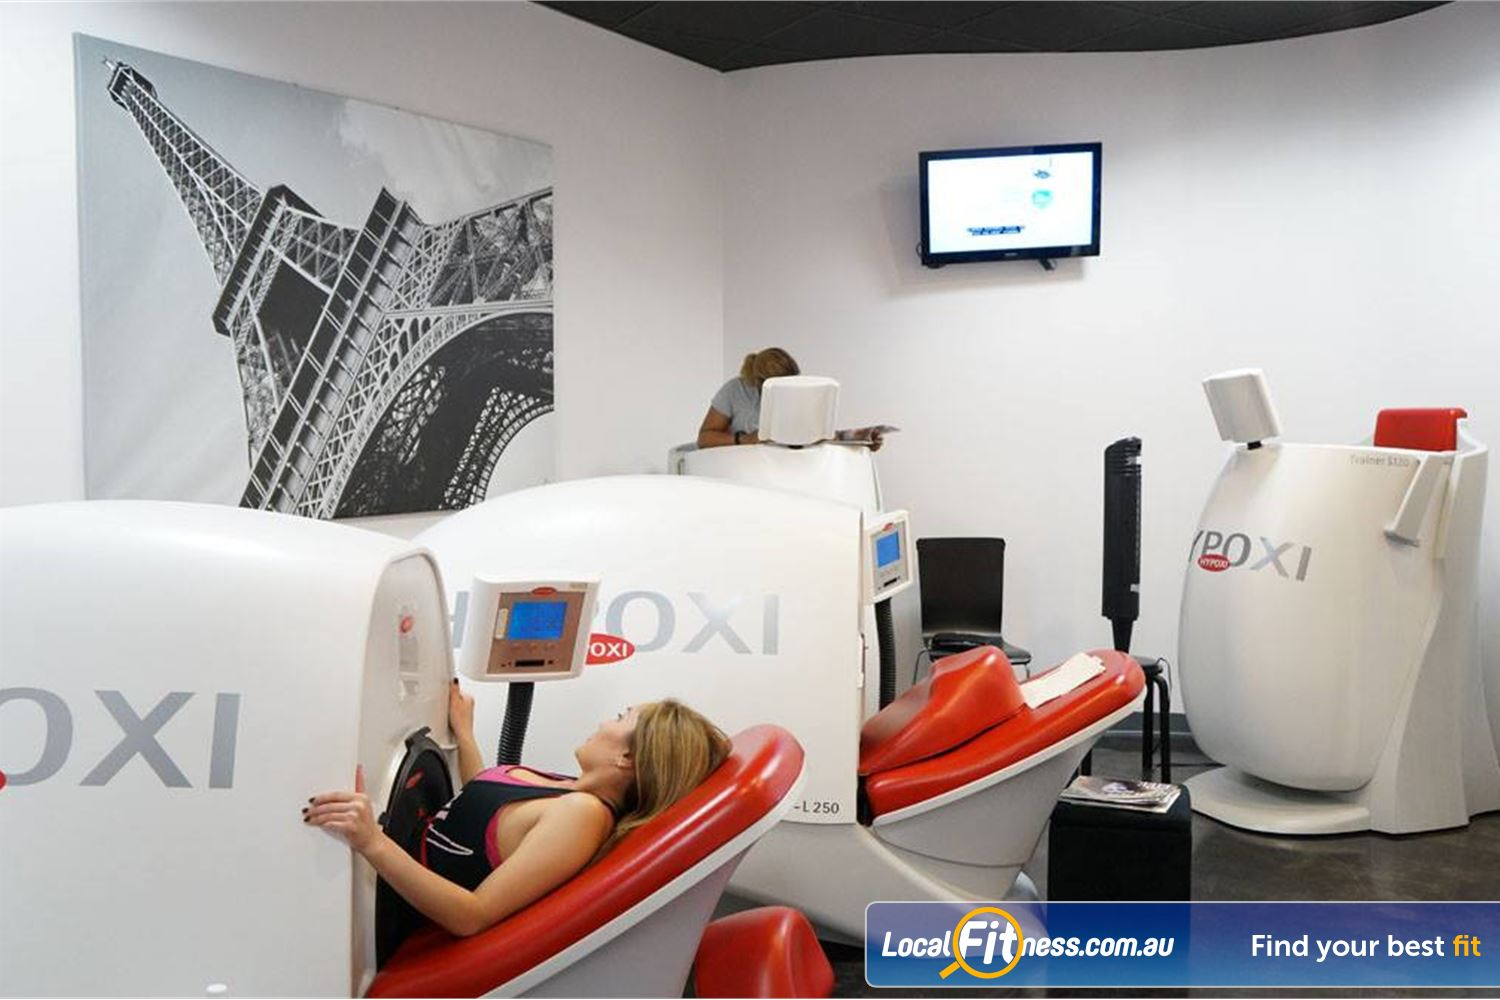 HYPOXI Weight Loss Near North Balgowlah Low-impact exercise with advanced technology and healthy nutrition.